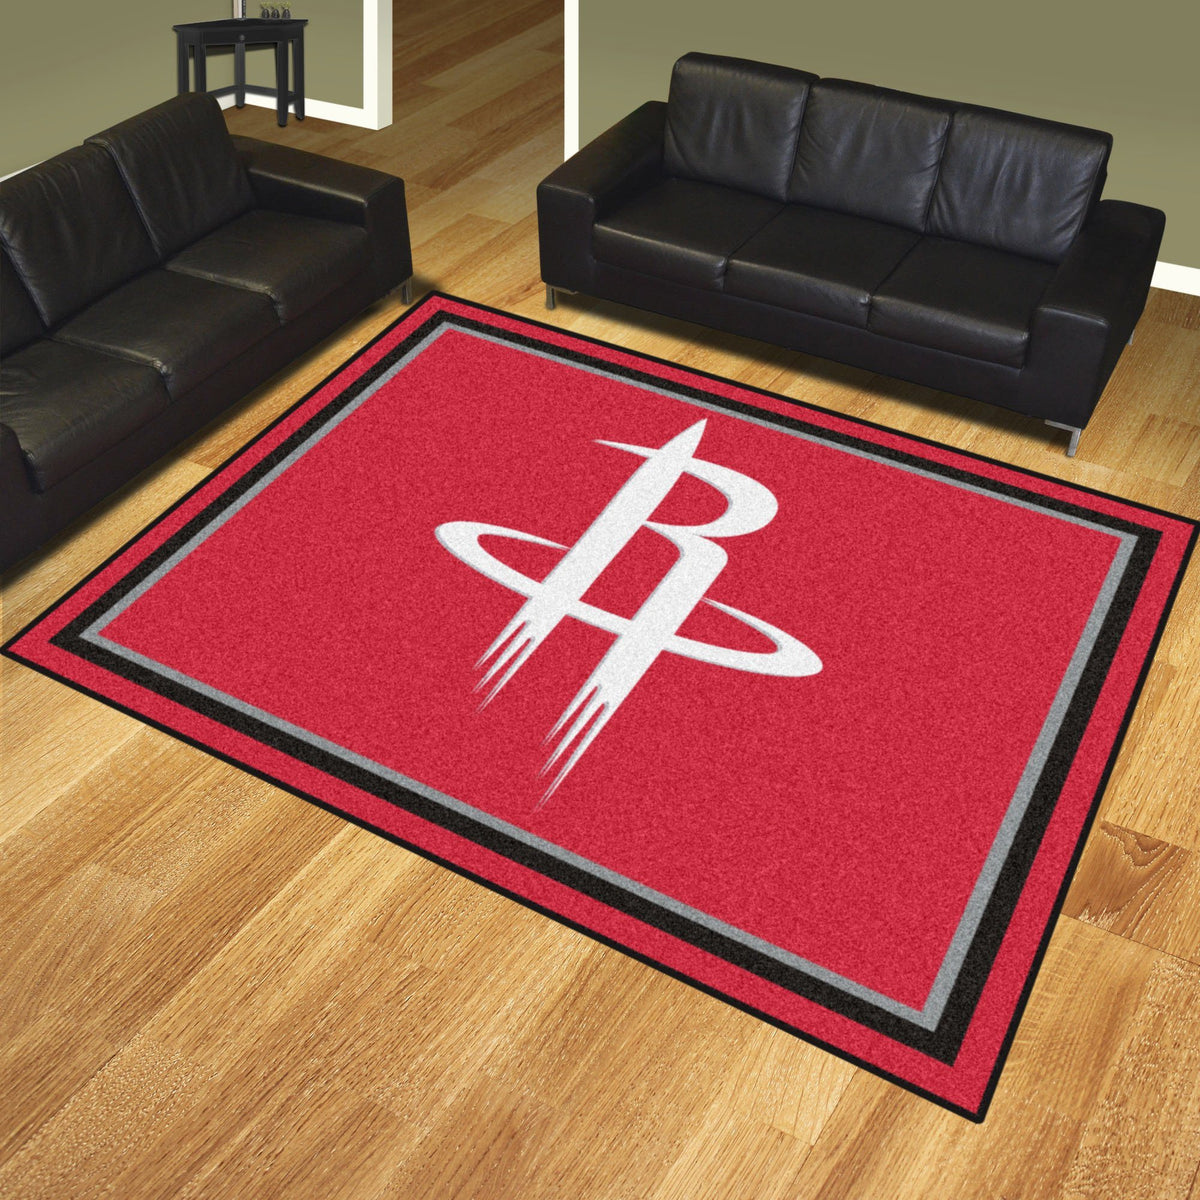 NBA - 8' x 10' Rug NBA Mats, Plush Rugs, 8x10 Rug, NBA, Home Fan Mats Houston Rockets